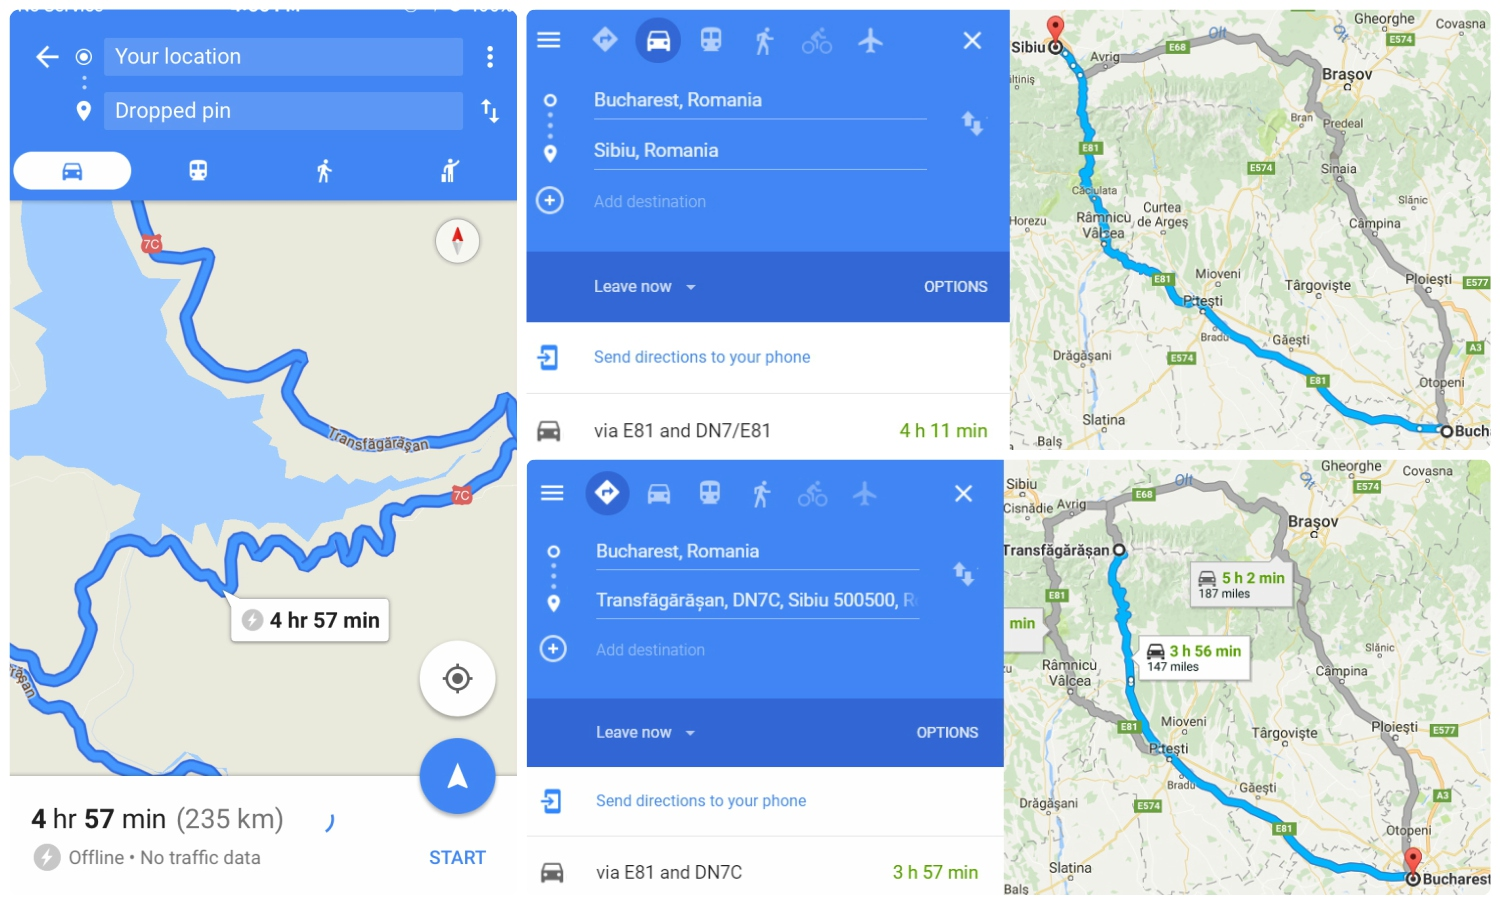 Left : Screen shot from our phone of the directions we got by dropping pins on the Transfagarasan Highway as we drove.  Top/Right : The map given when looking up directions to Sibiu, notice that the Transfagarasan Highway isn't a route option.  Bottom/Right : The map given when we entered the destination as 'Transfăgărășan, DN7C, Sibiu 500500, Romania', which will give a route option on the highway.